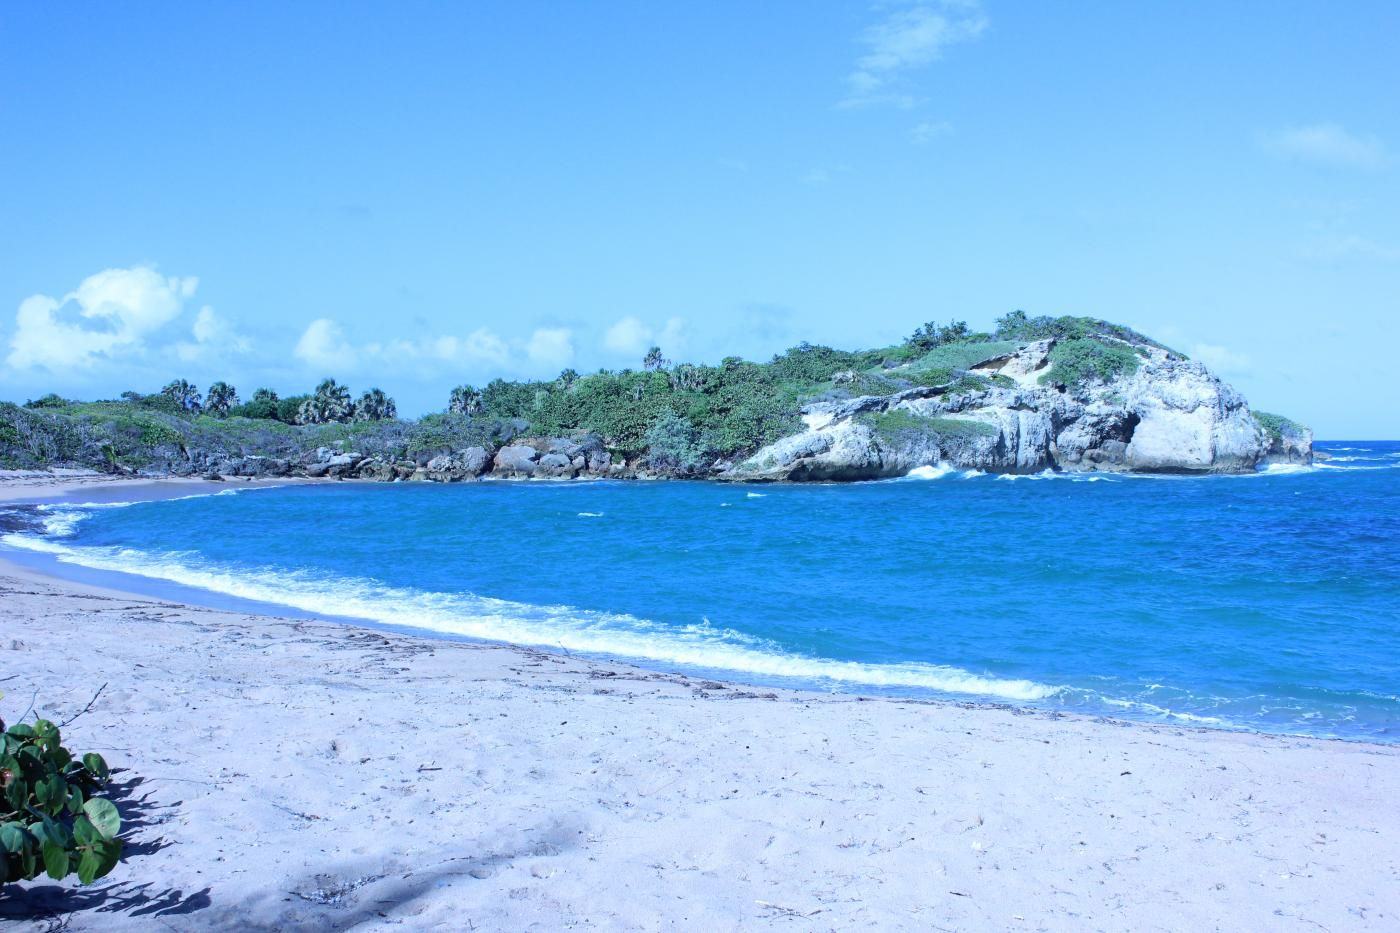 Visit The Private Coconut Cove Beach Property For An